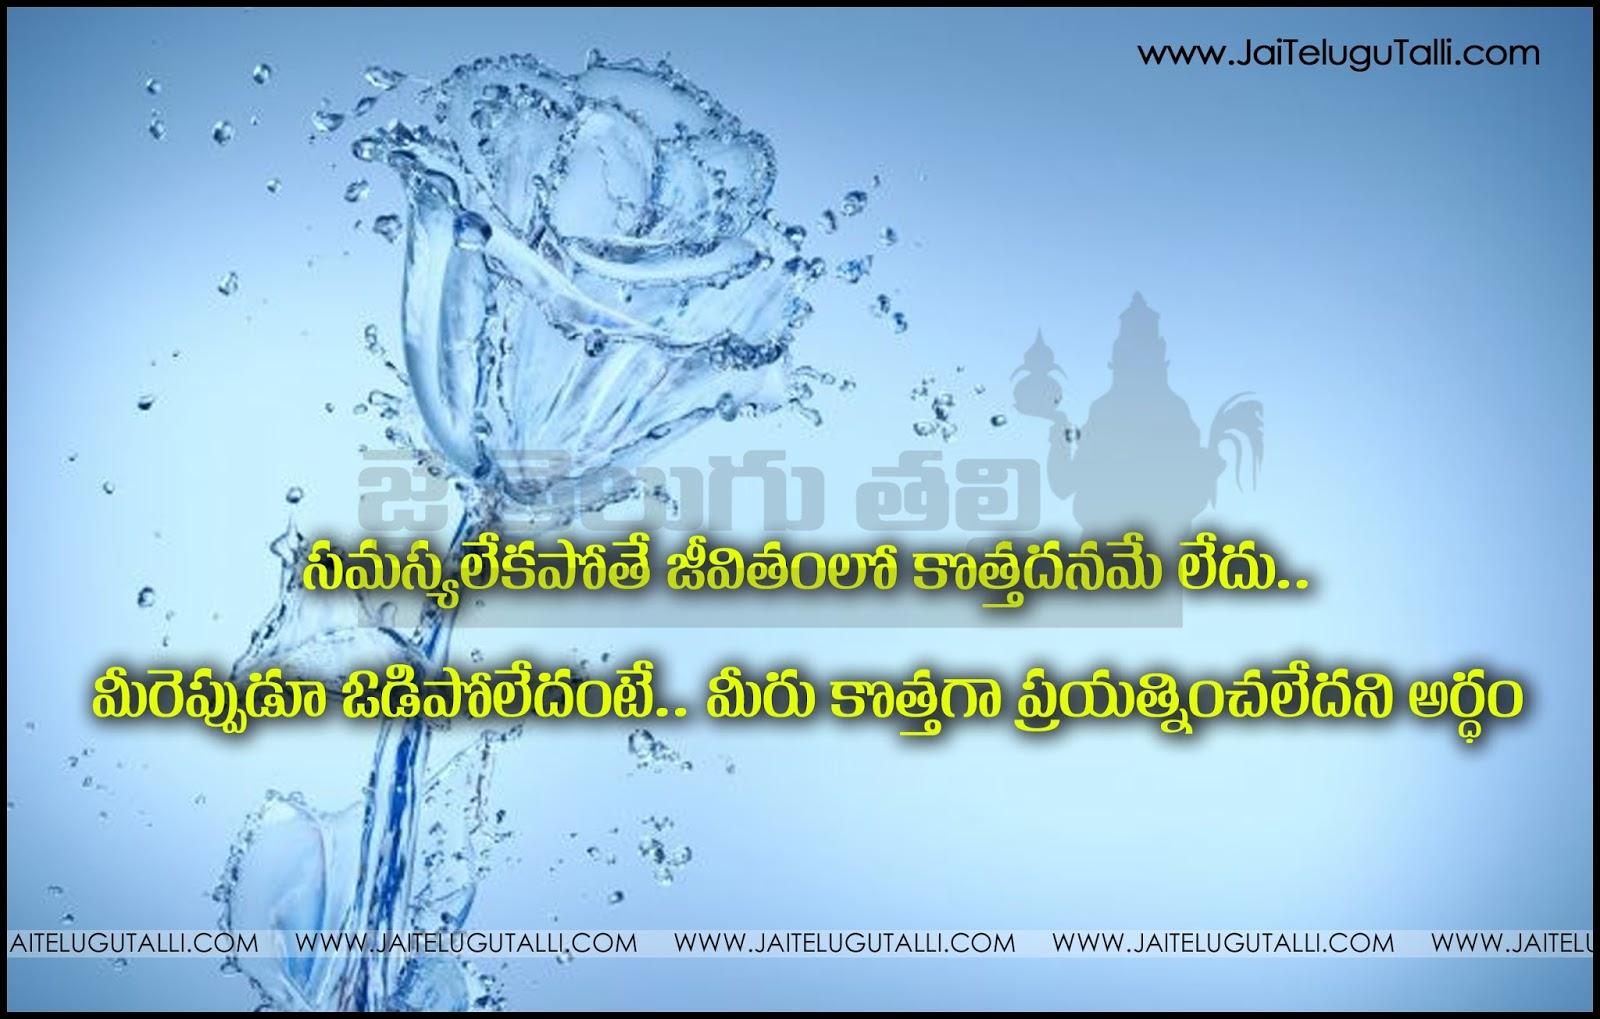 Best Telugu Quotes Life Motivational Thoughts And Images Www